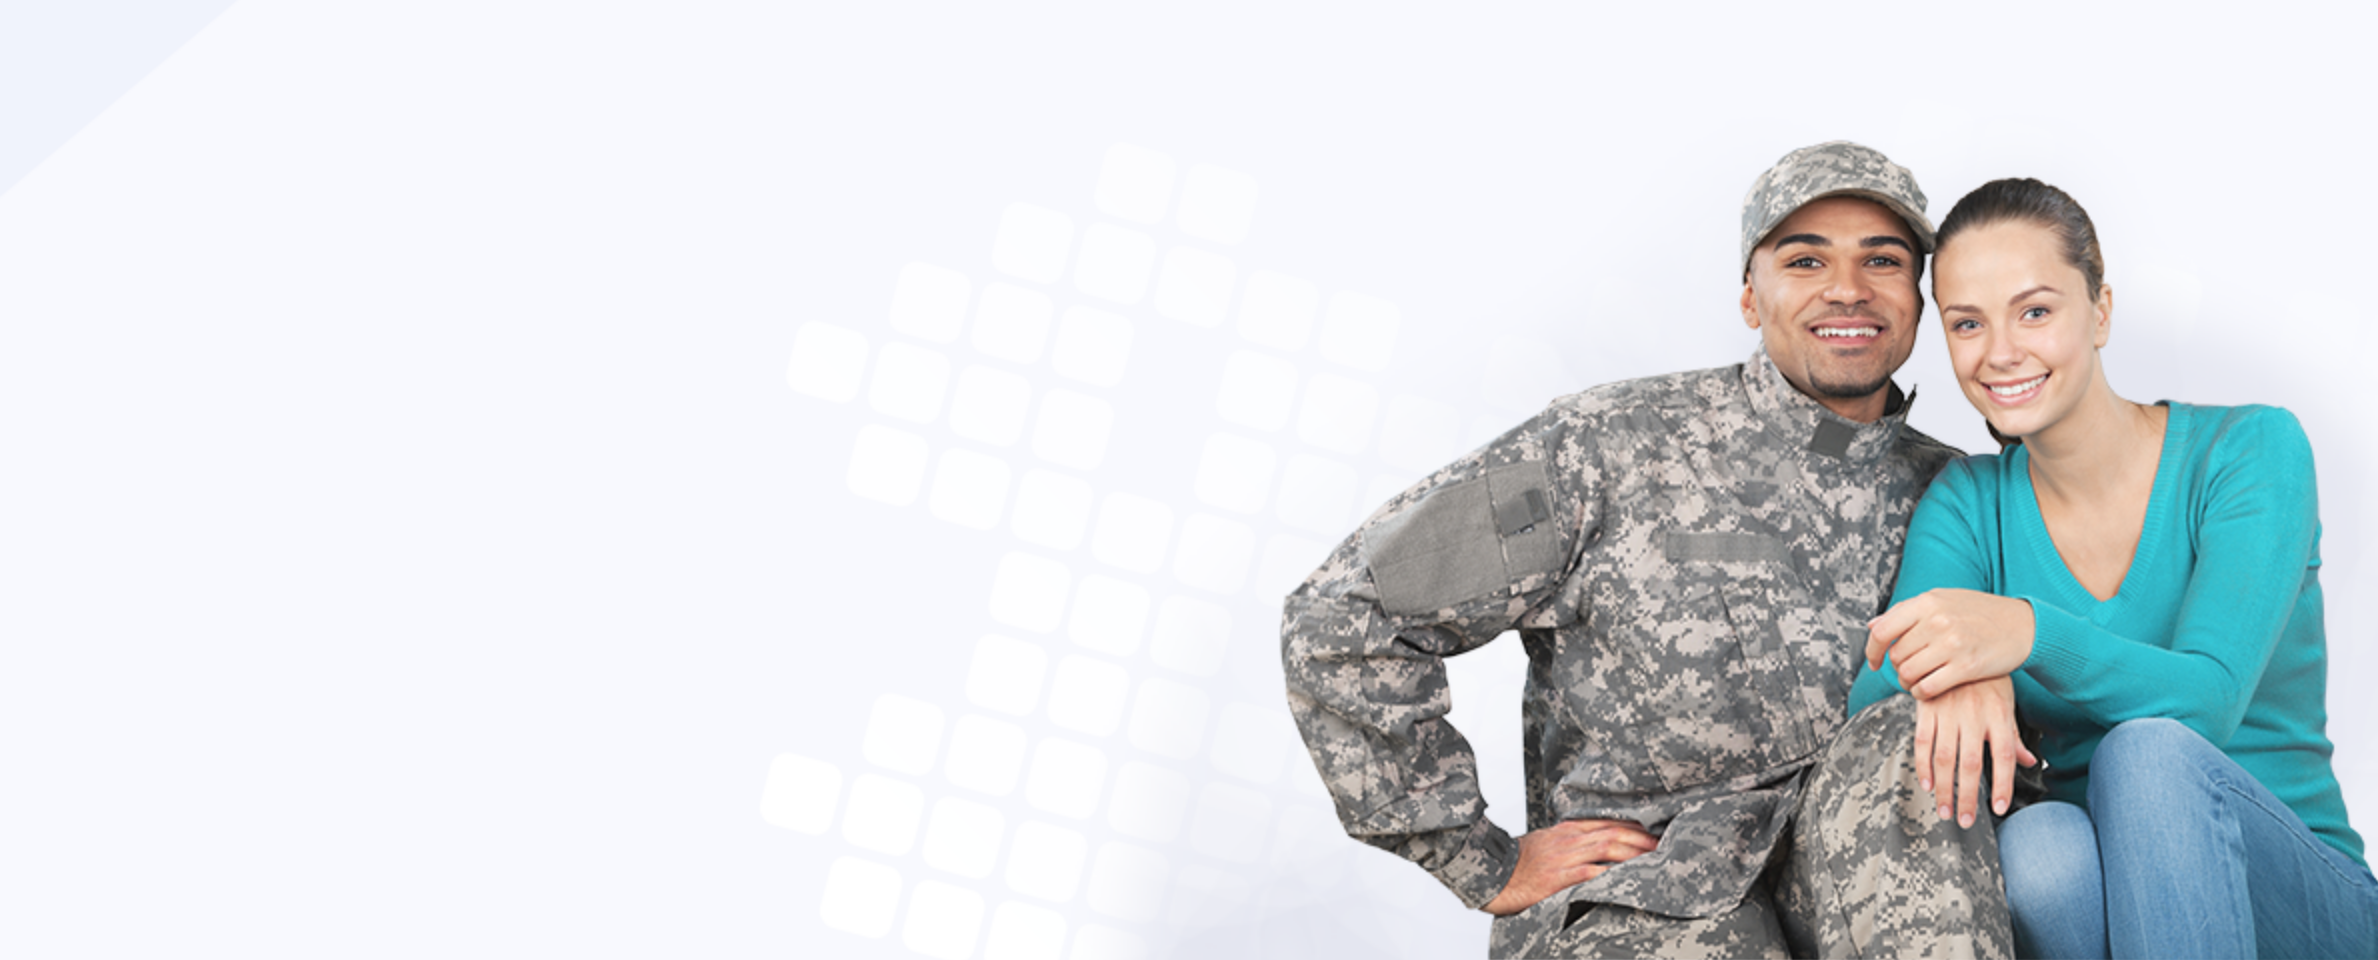 In-Network Urgent Care Provider for Veterans